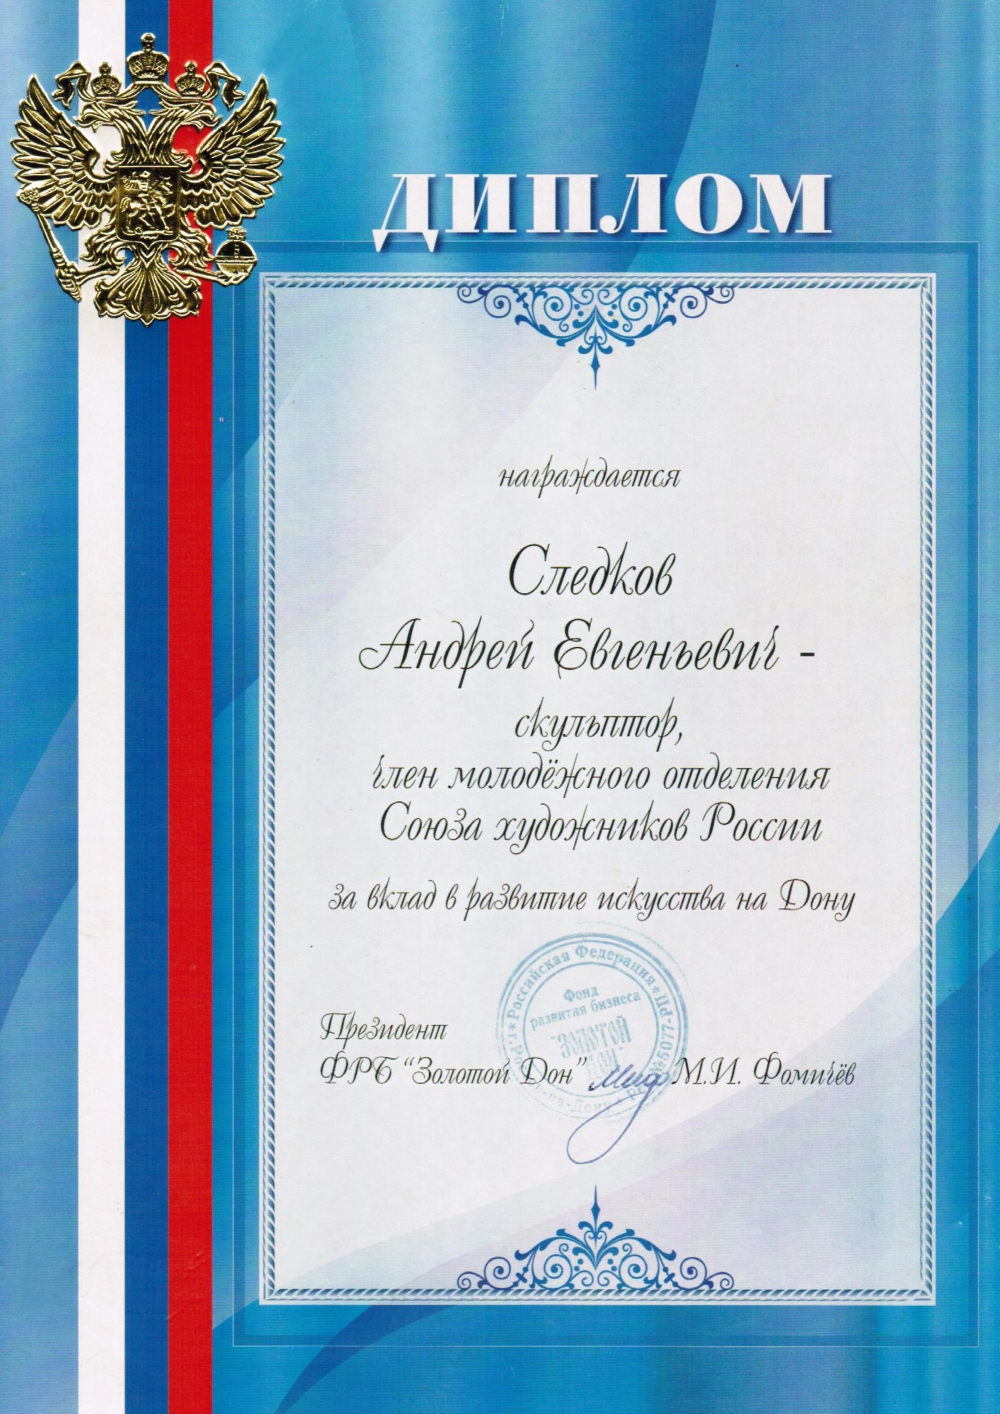 The diploma for contribution to the development of art on the Don region.